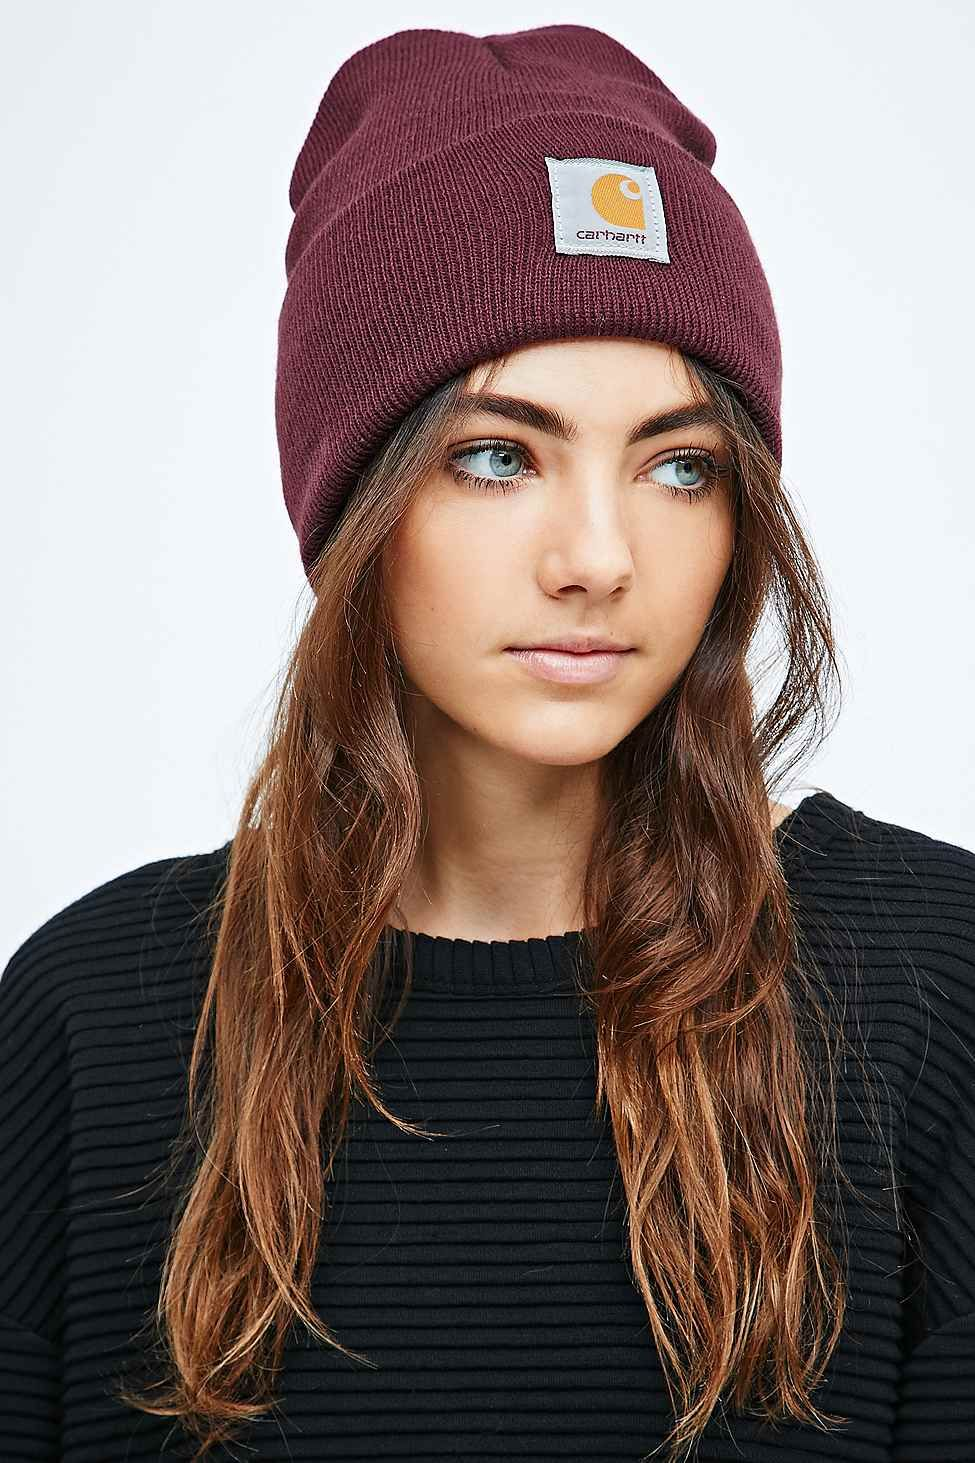 5136abf36dd The maroon beanie matches perfectly with her bright eyes and light brunette  hair